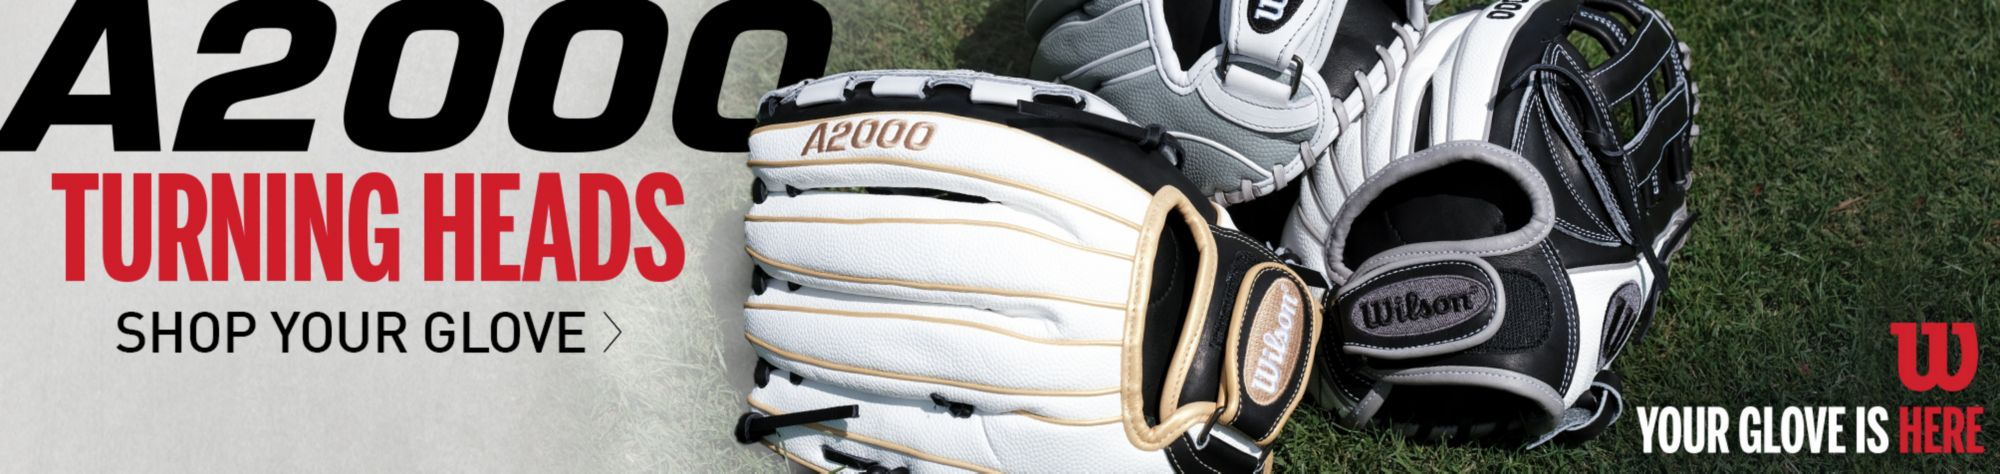 A2000 Turning Heads Shop Your Glove